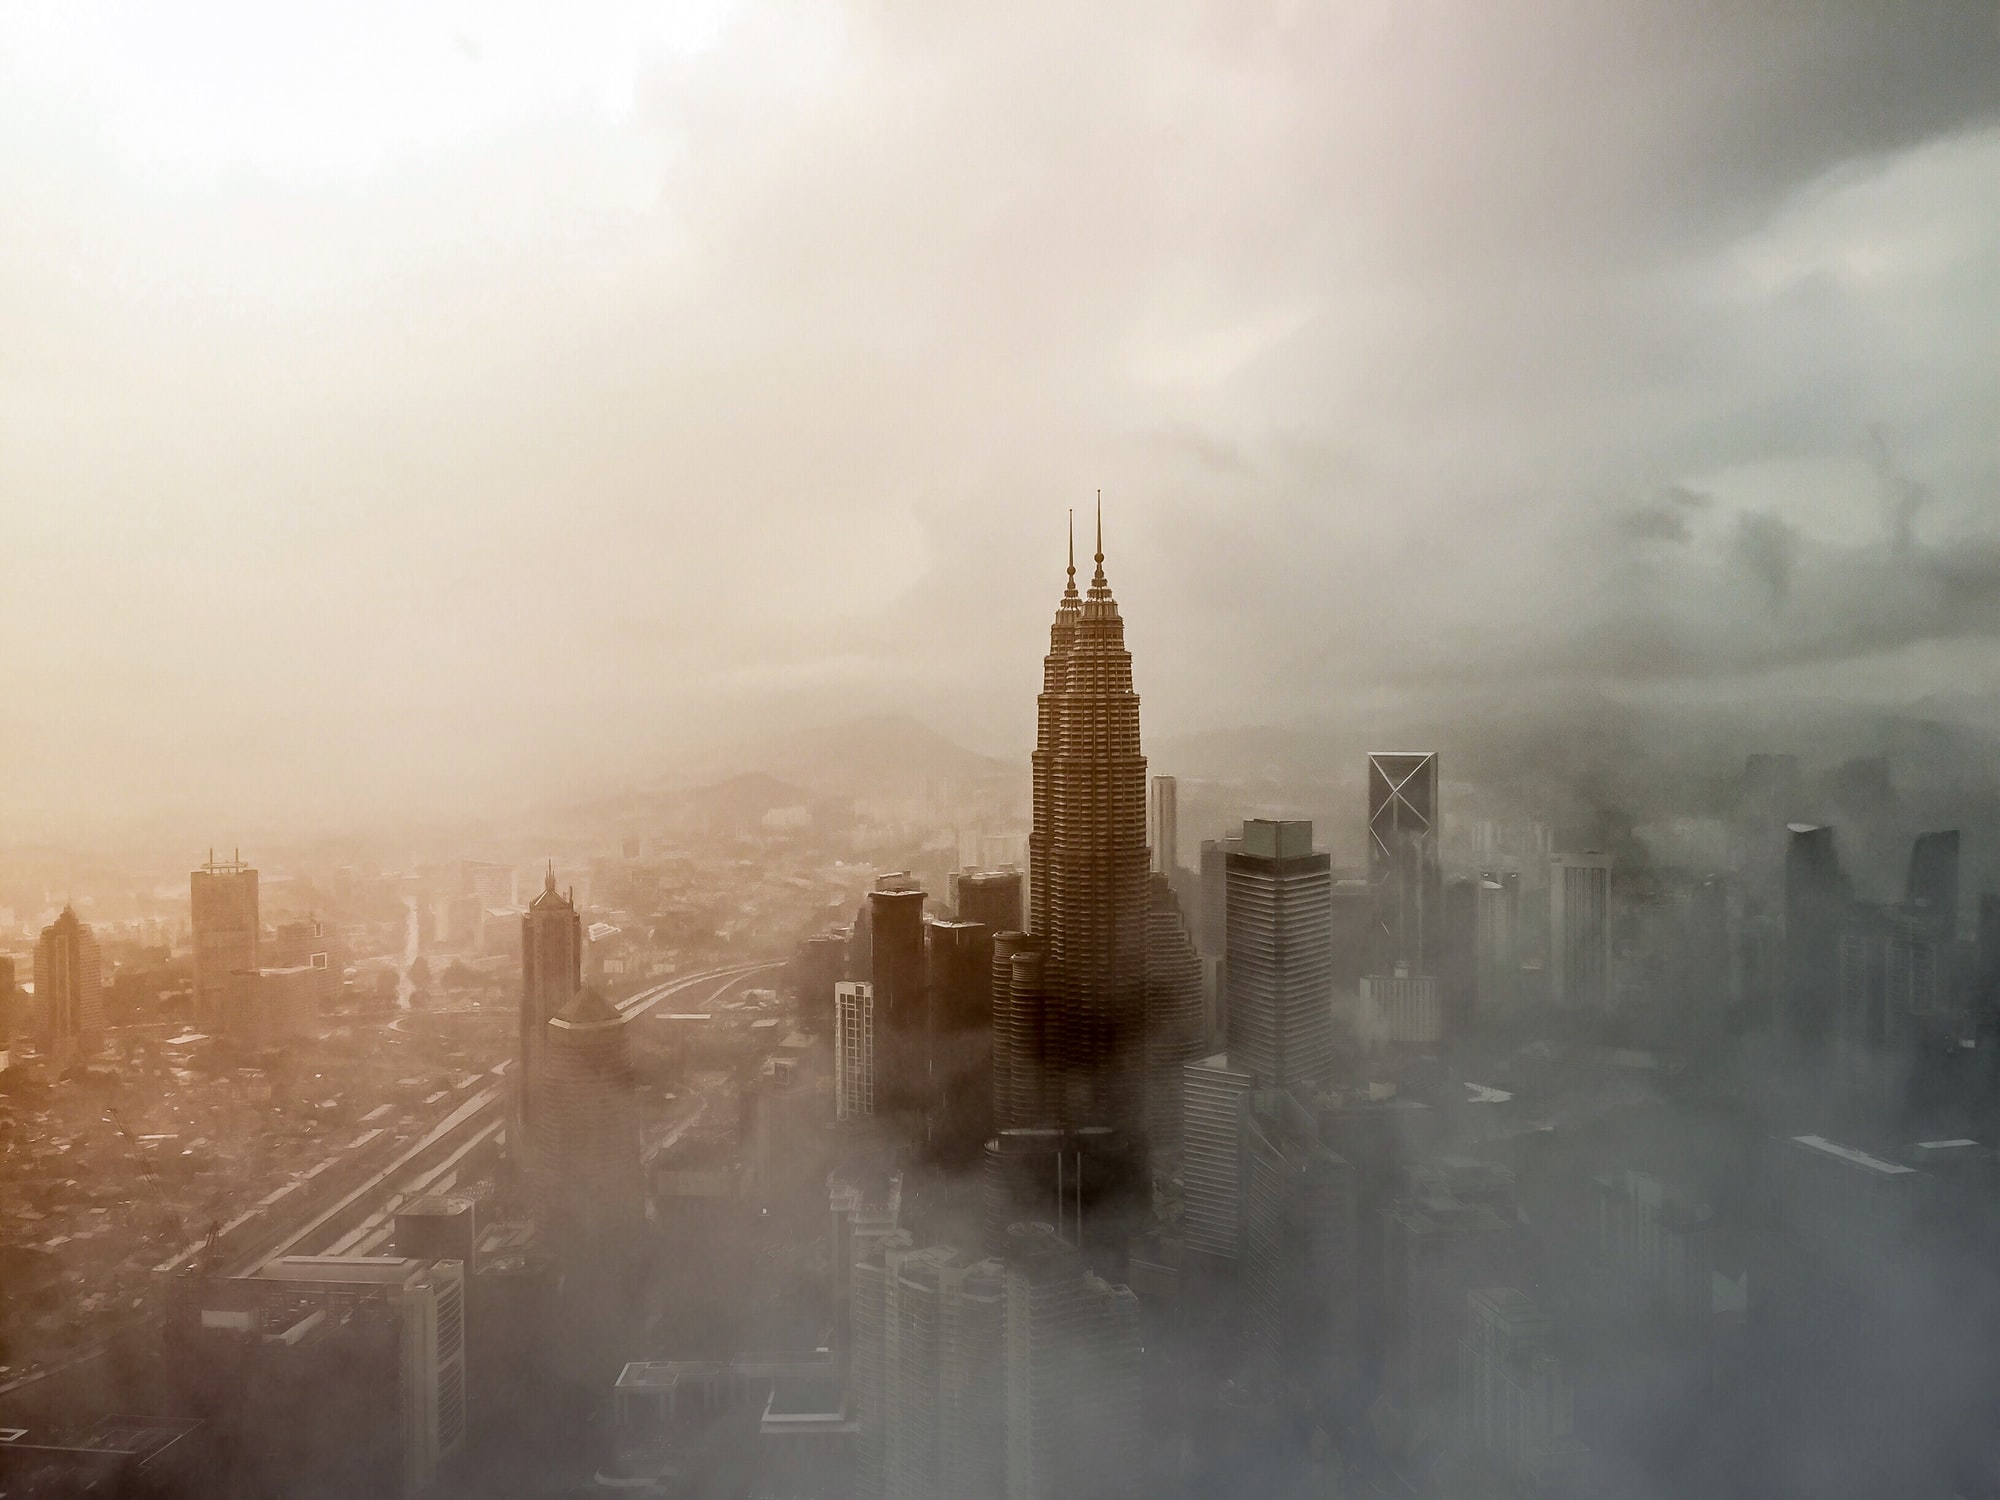 I was at KL tower and from there the view was so amazing with the haze surrounding the tall skyscrapers, sky covered with stormy clouds lighting up with the rays of setting sun.